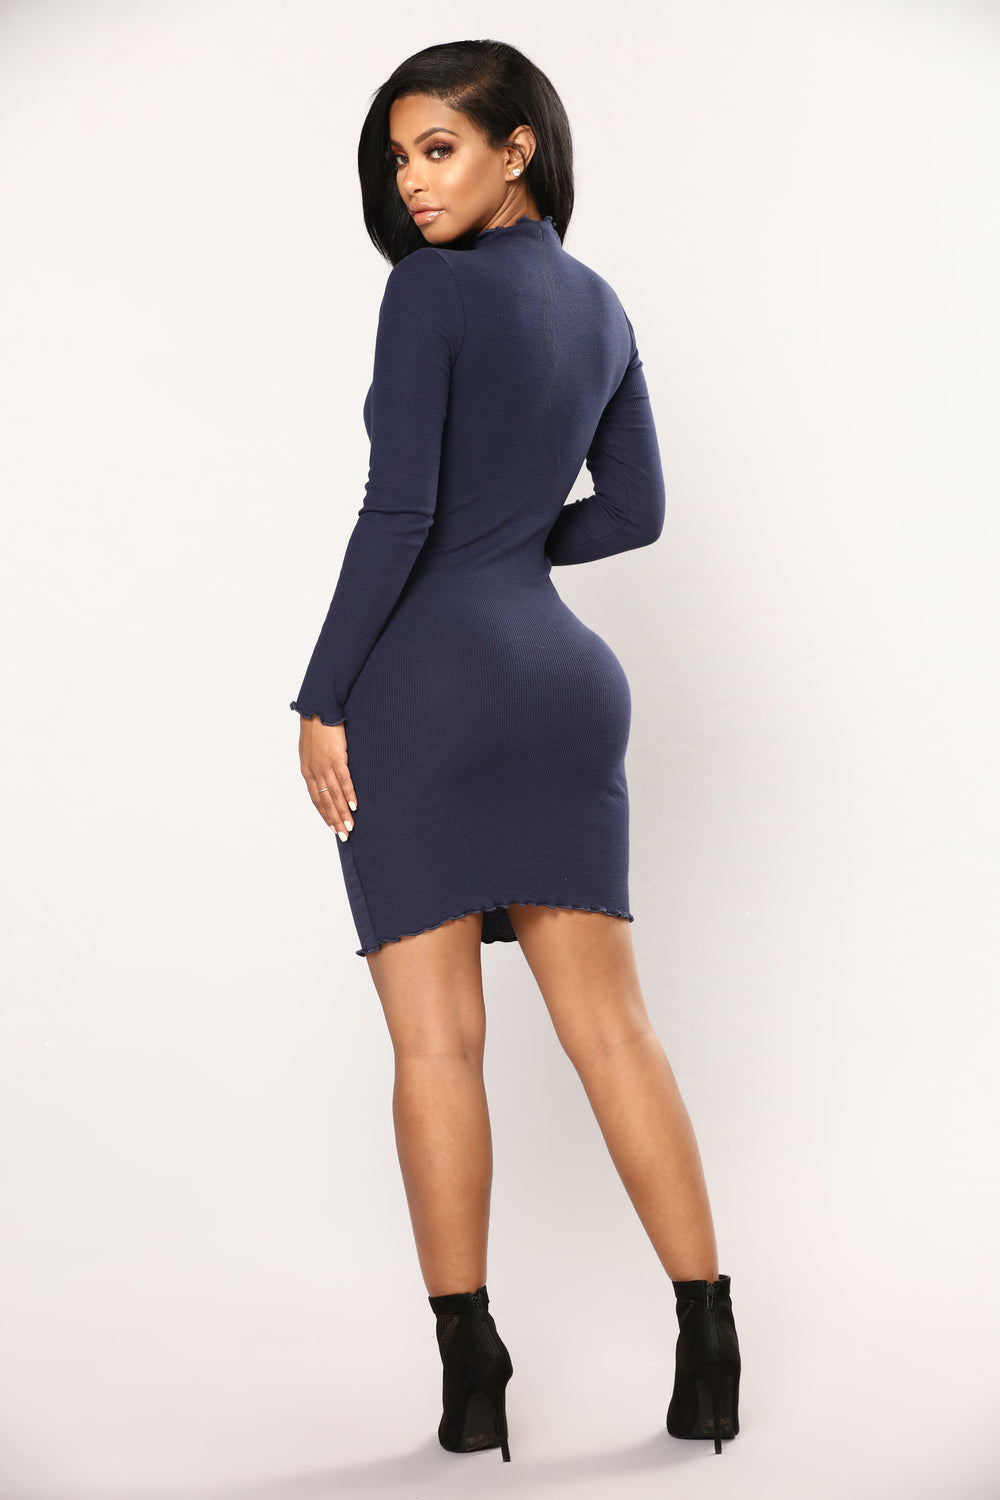 Cinna Ribbed Dress - Navy